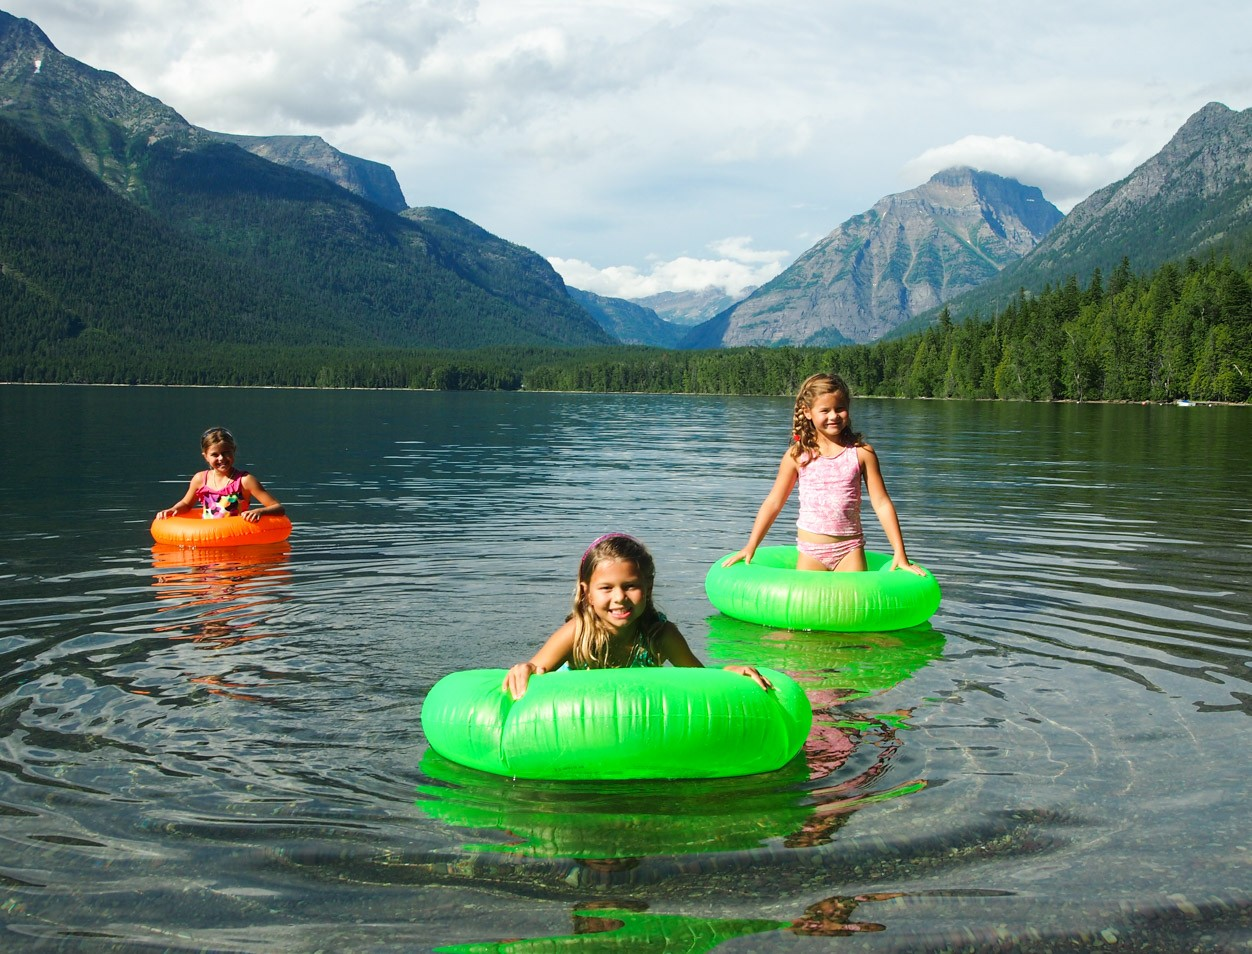 Kids enjoying tubing on Lake McDonald in Glacier National Park